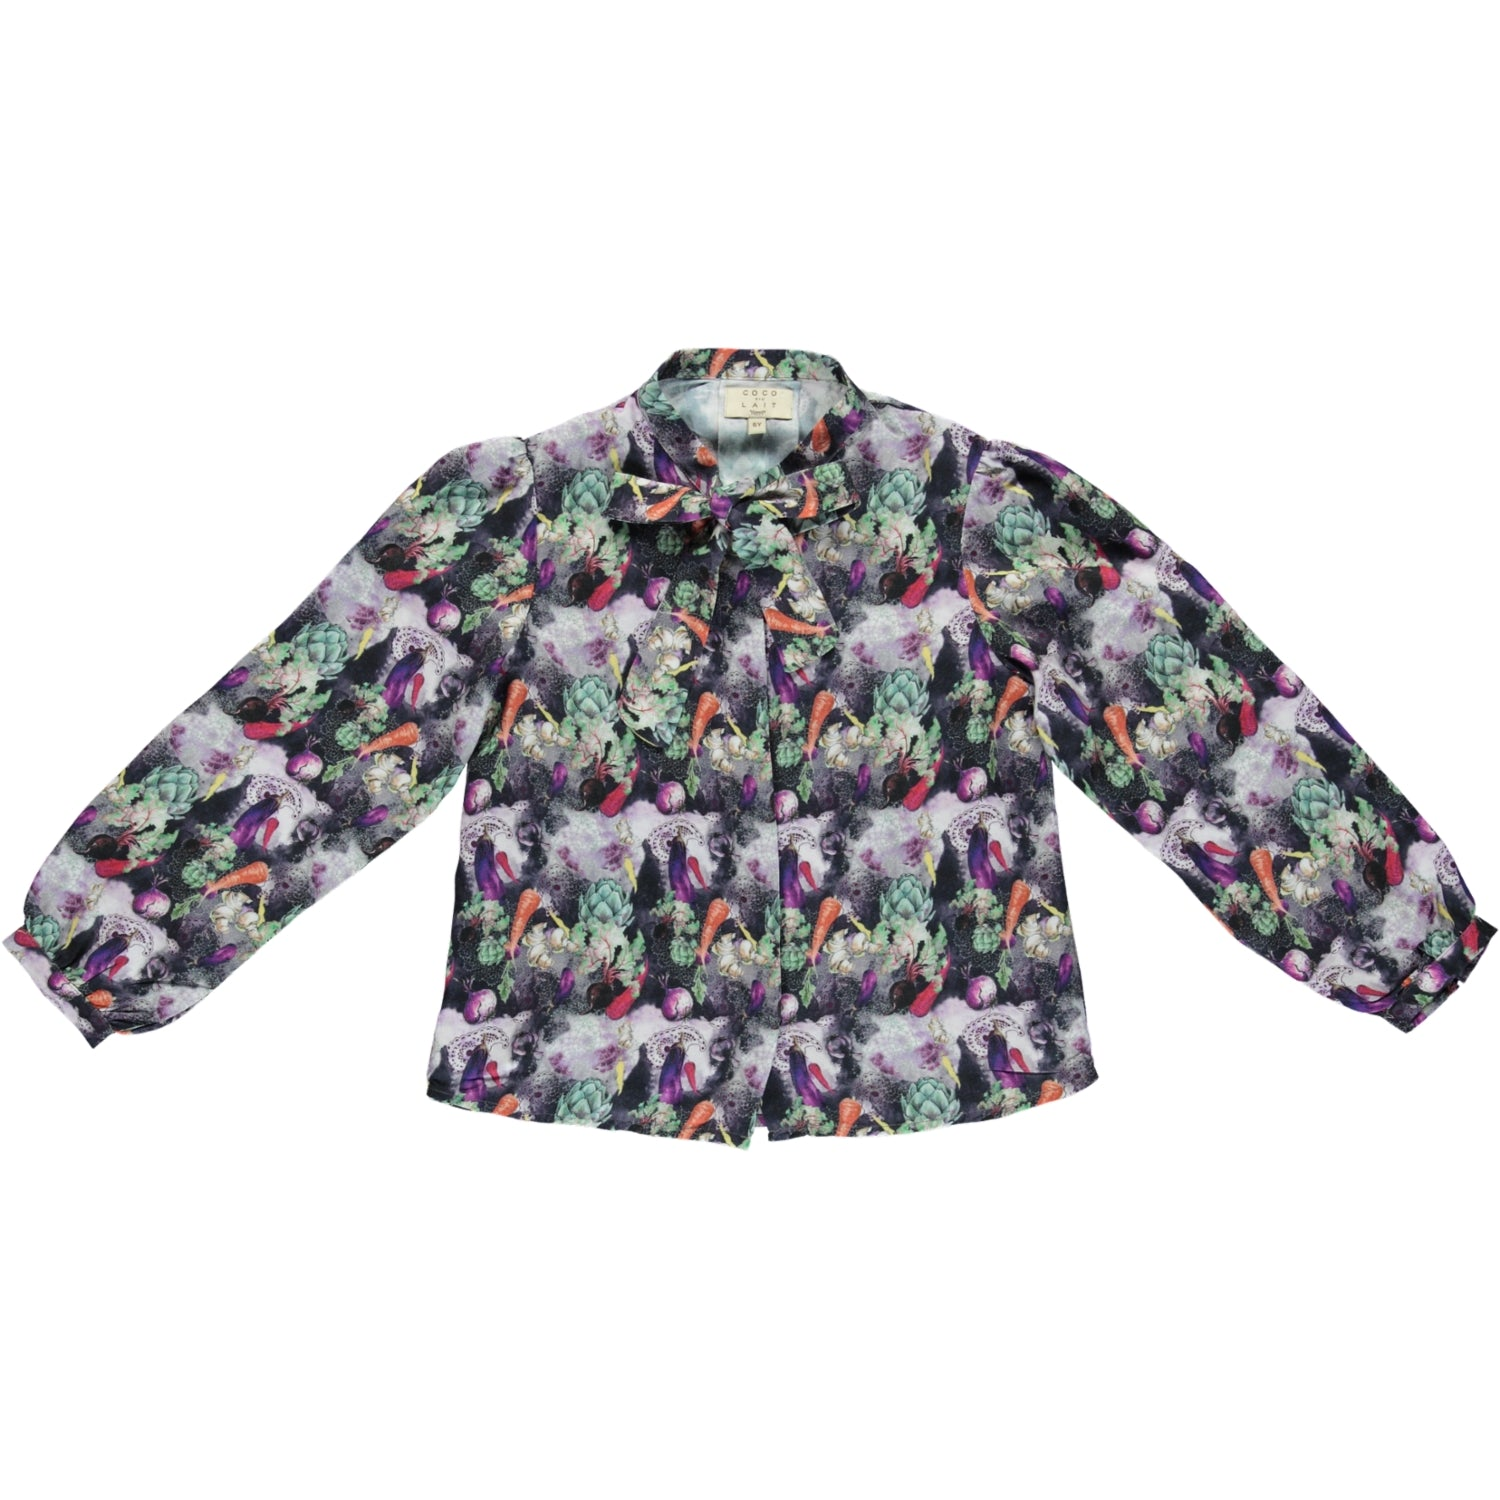 Load image into Gallery viewer, Coco Au Lait VEGETABLES BLOUSE Blouse Multicolor Veggies